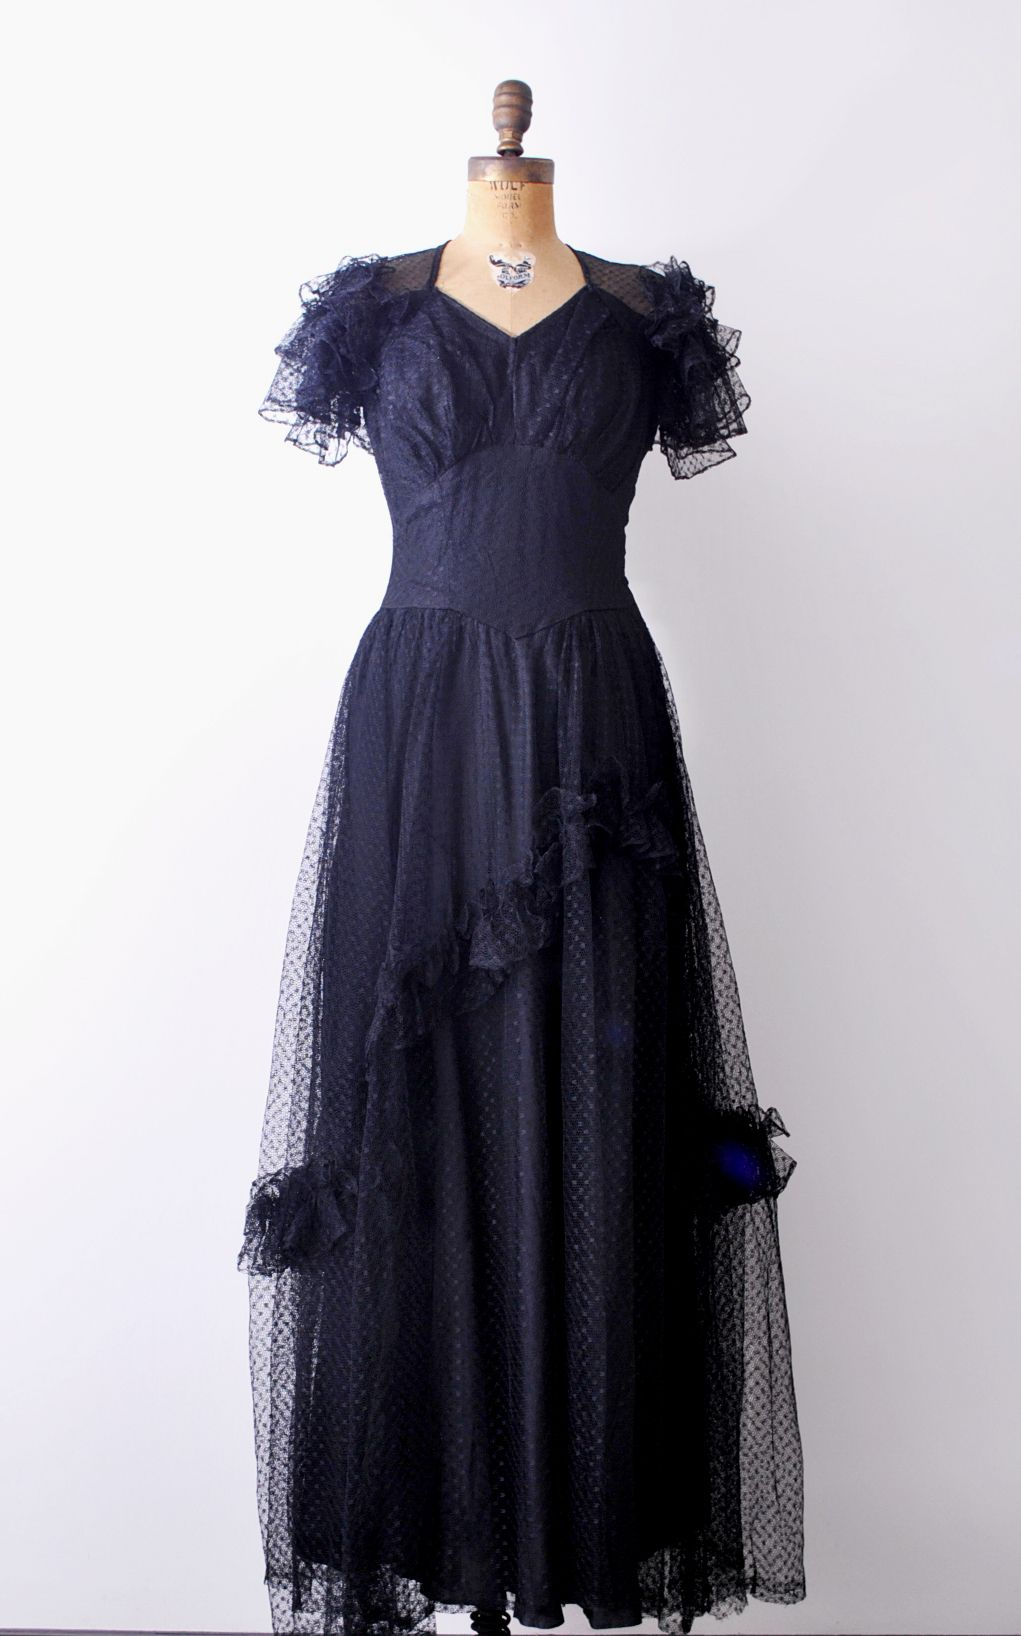 1940s Black Gown M 40 Tulle Dress Ruffled Sleeves Sheer Etsy Dresses Tulle Dress Black Gown [ 1636 x 1021 Pixel ]